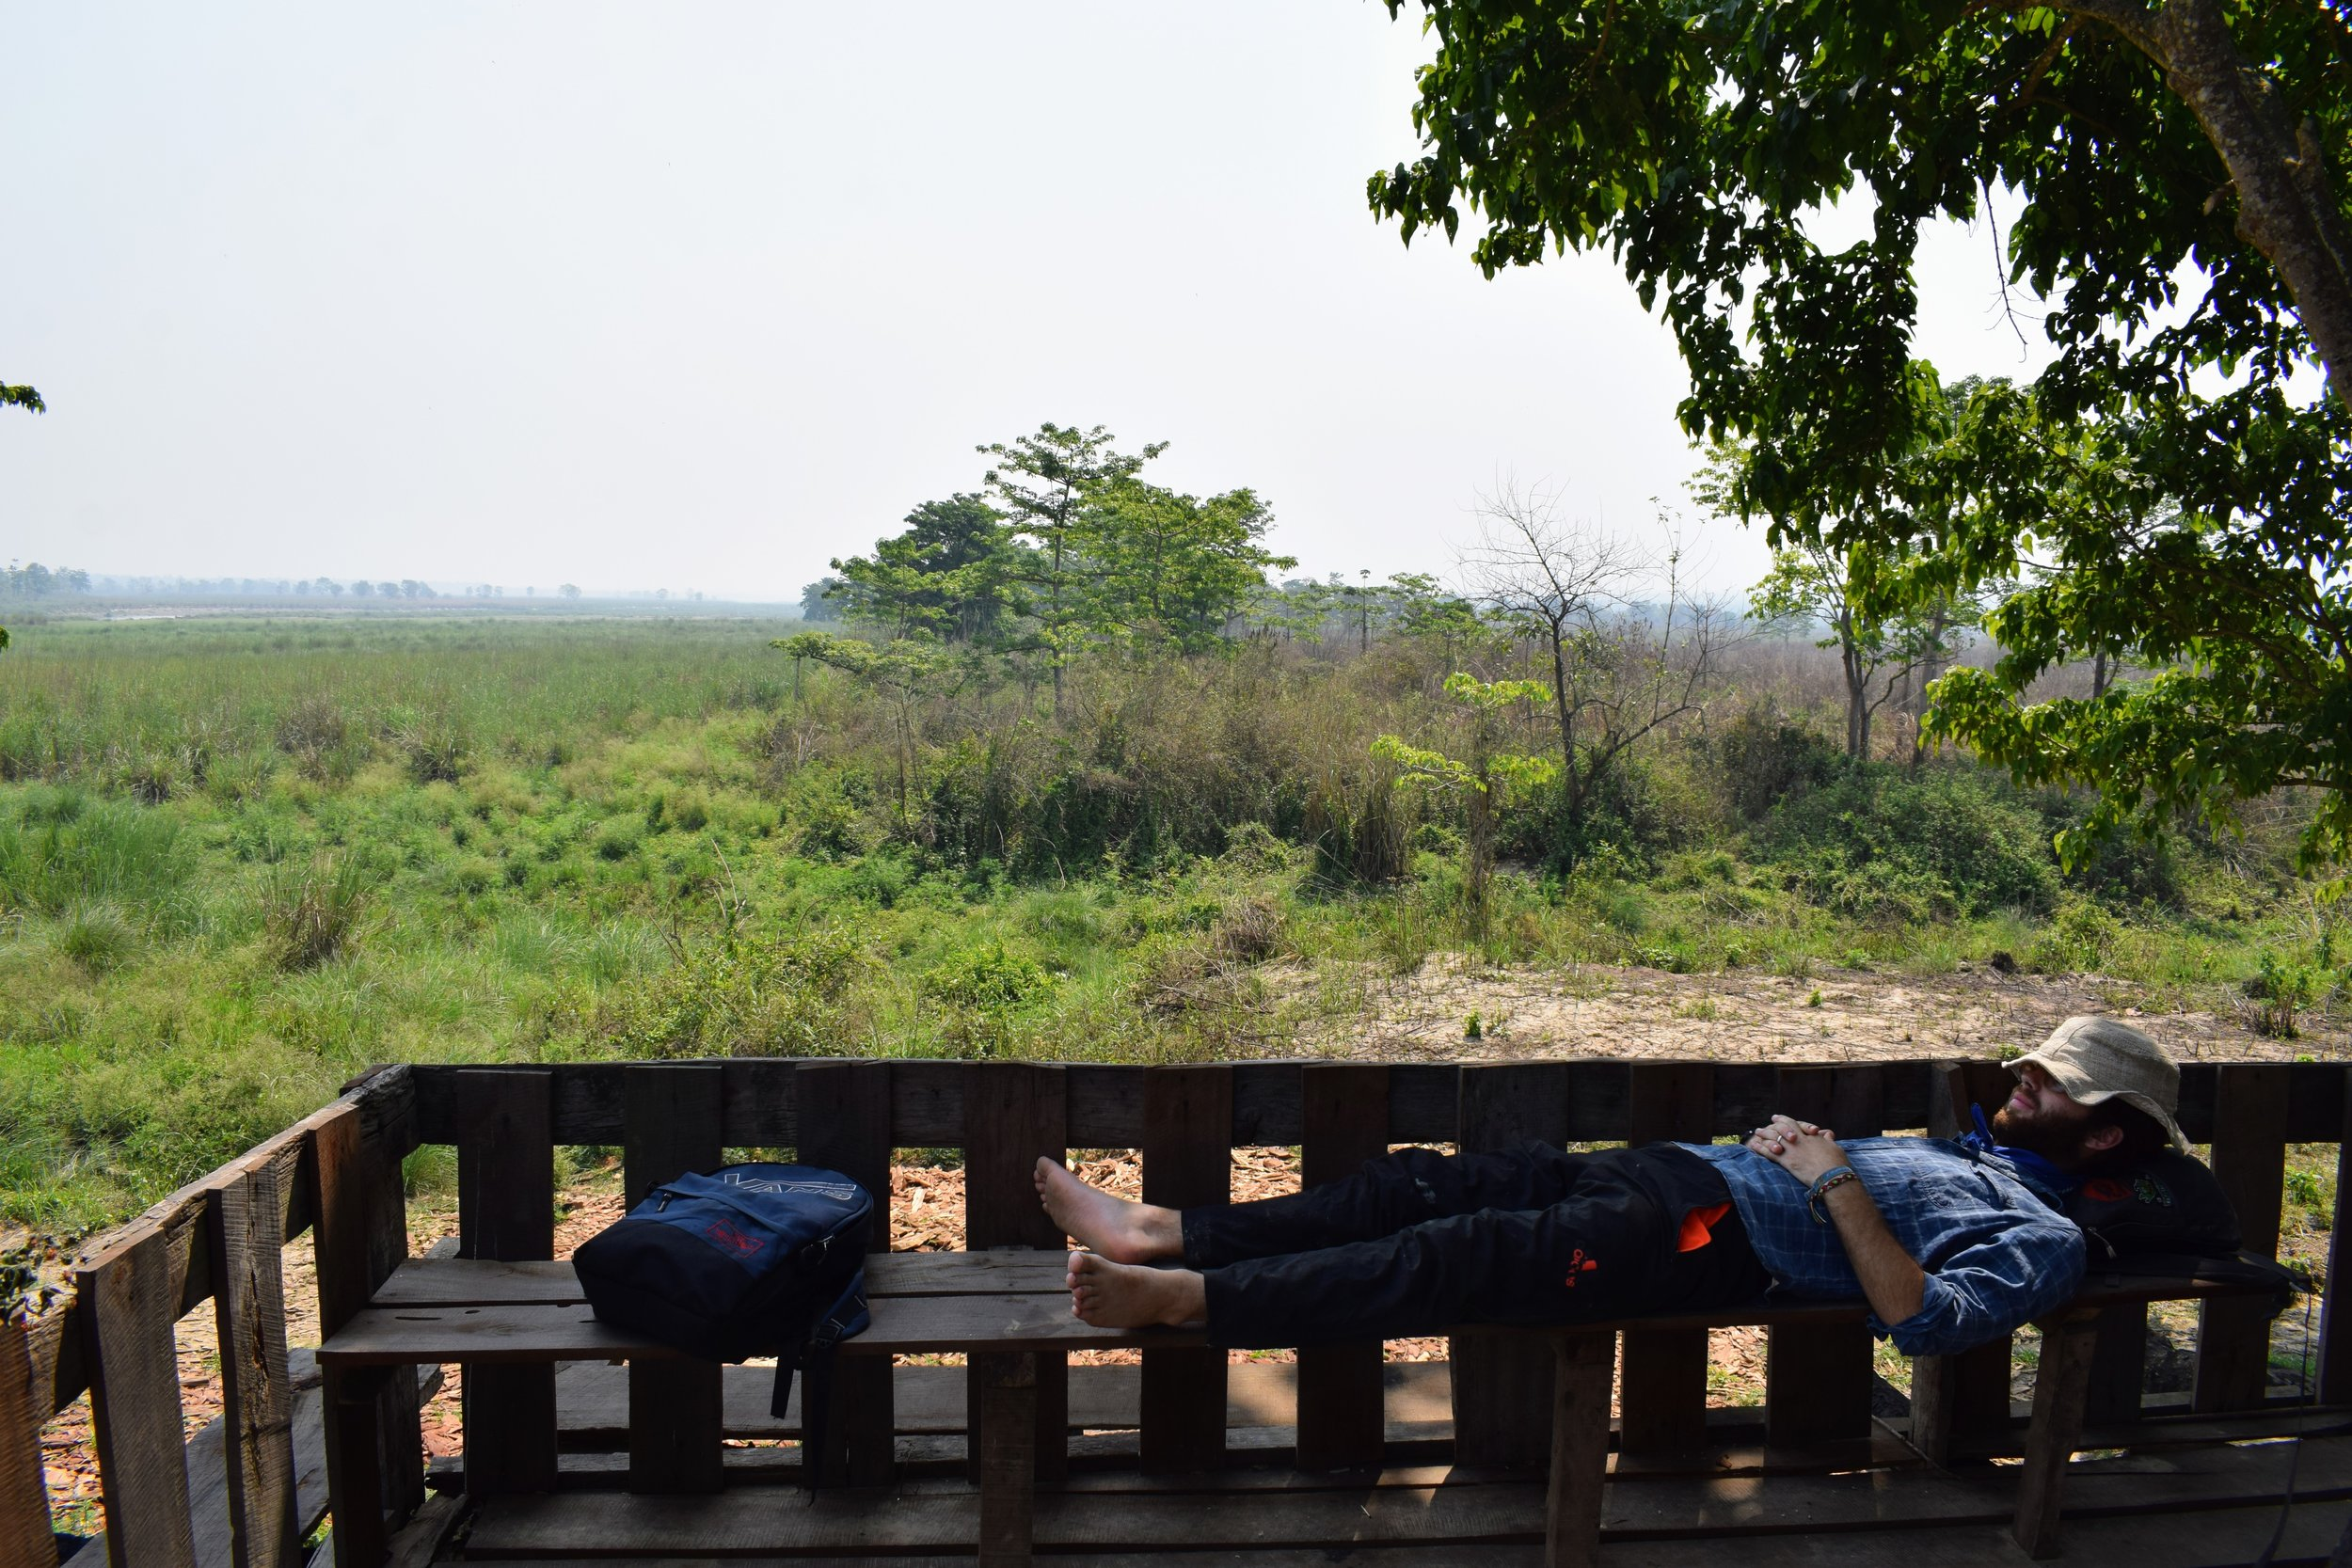 afternoon nap in chitwan national park